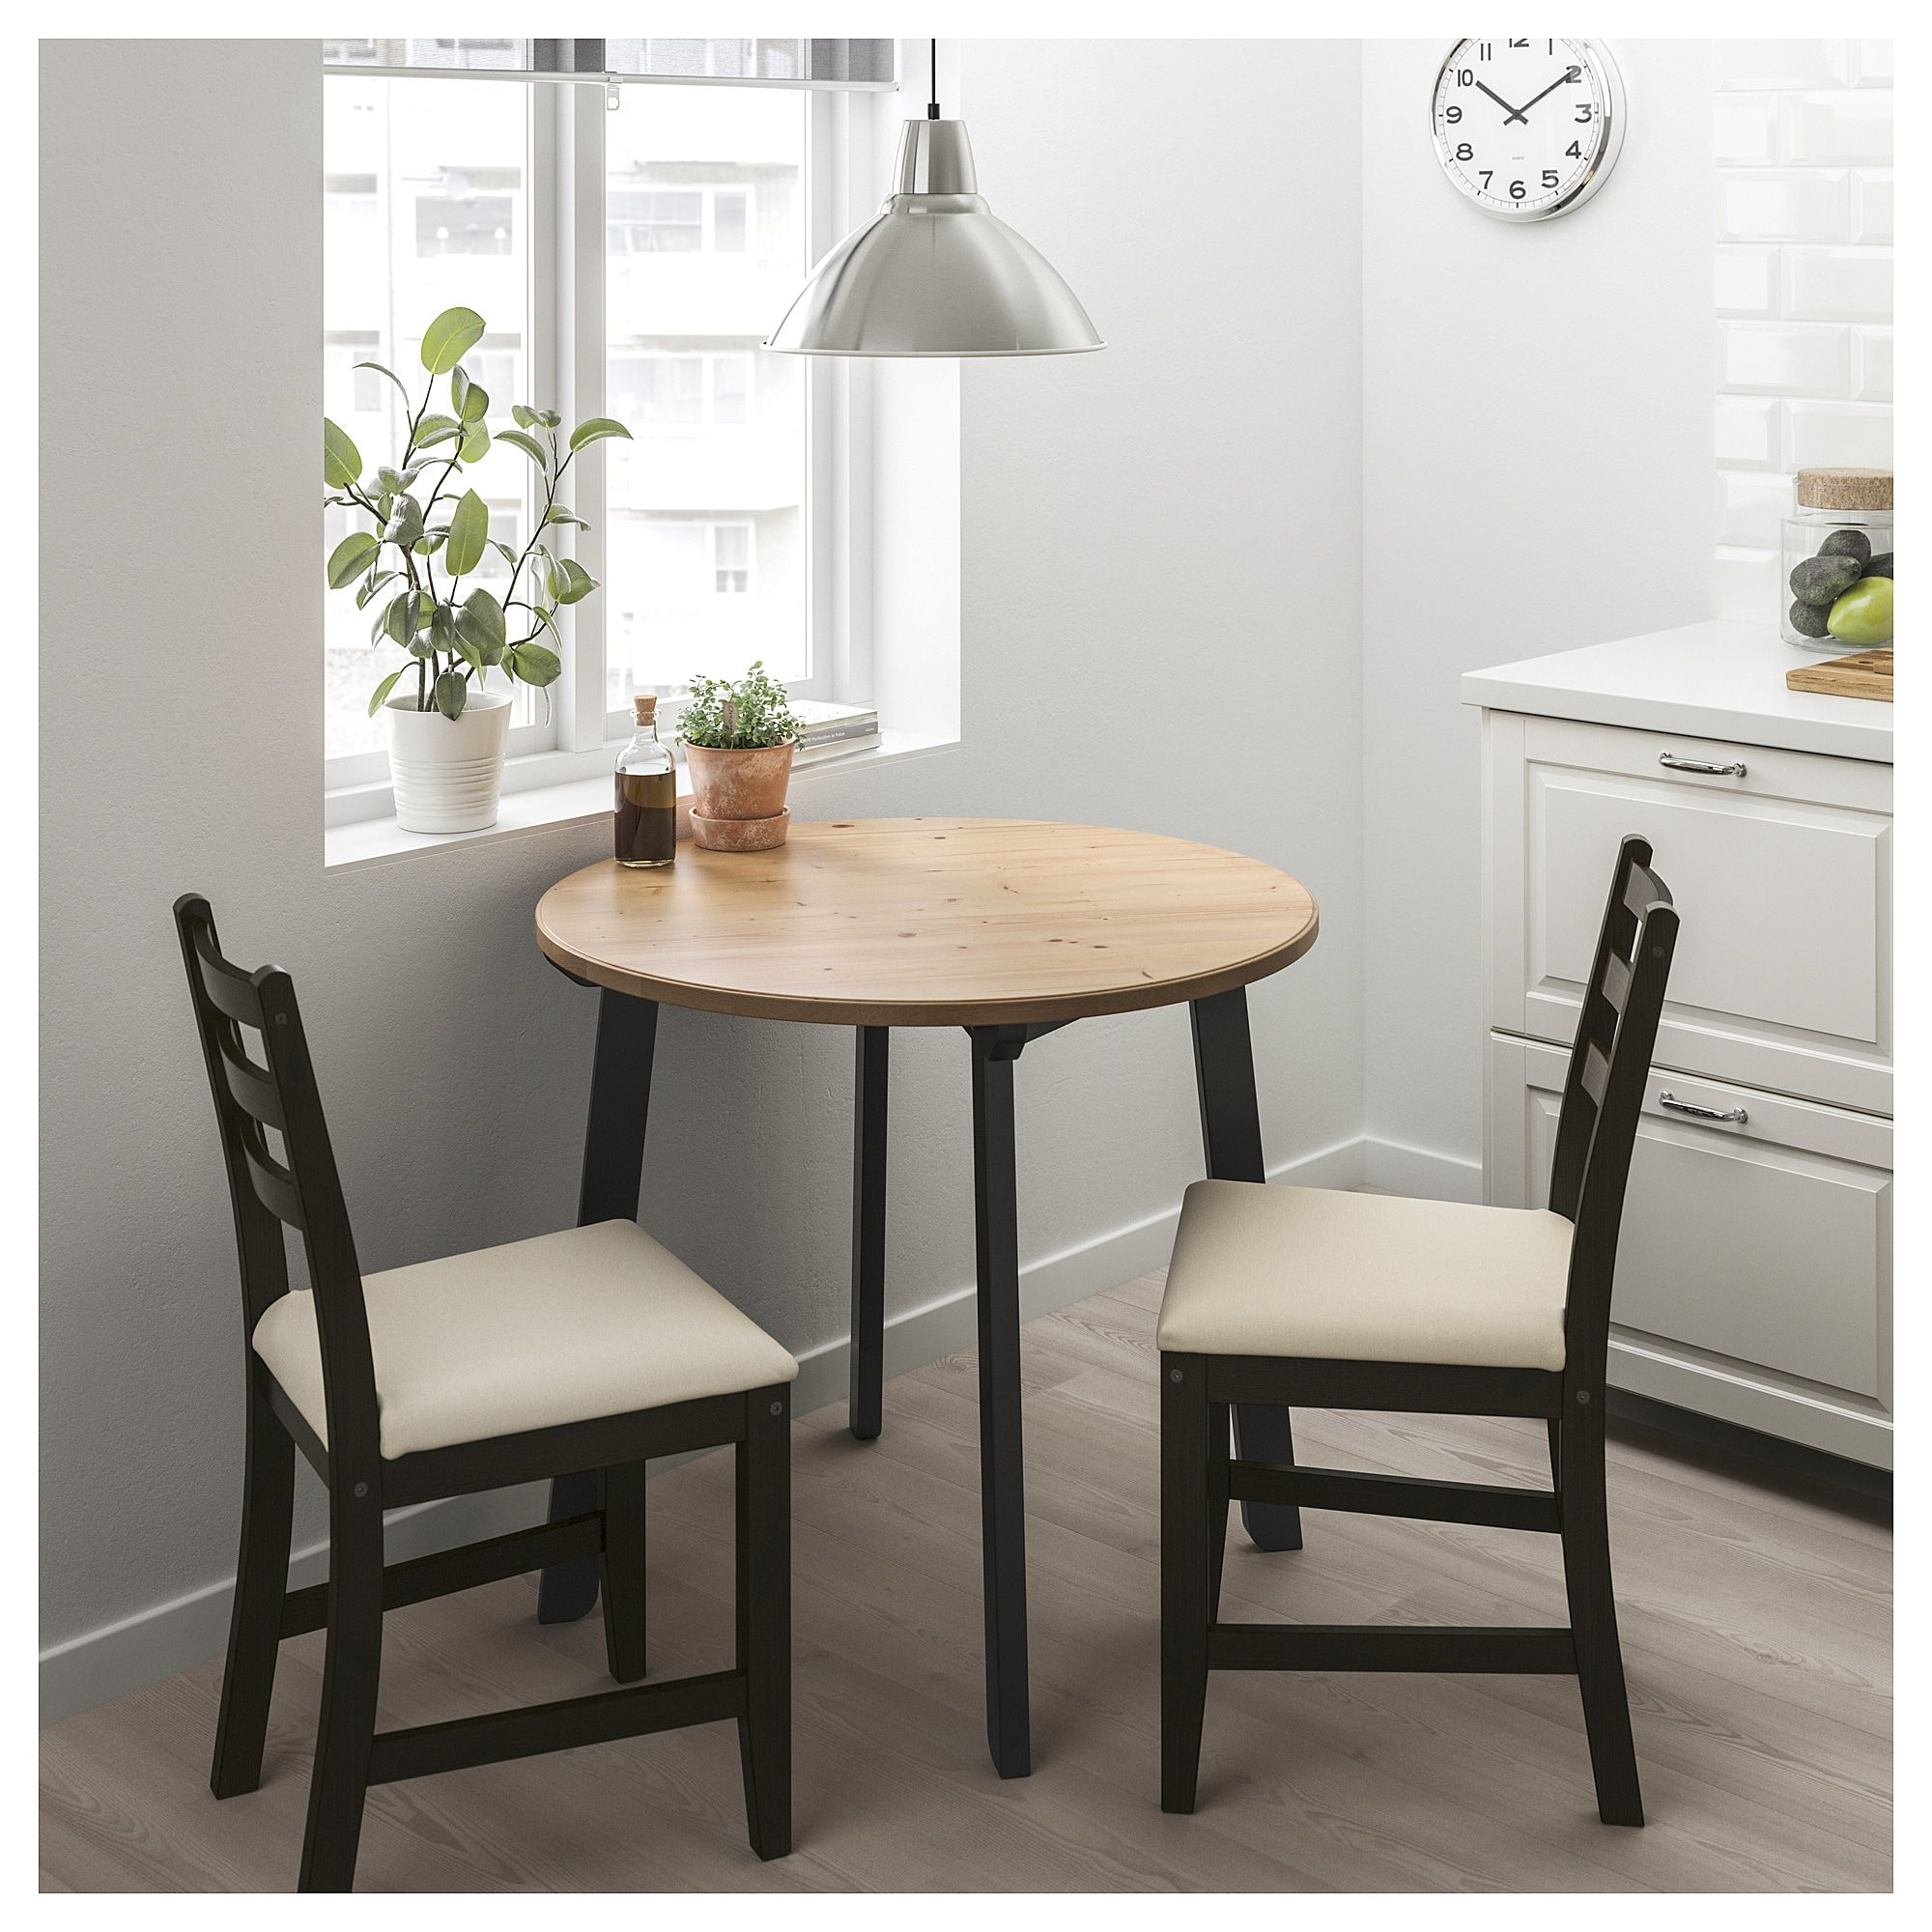 Gamlared Lerhamn Table And 2 Chairs Light Antique Stain Black